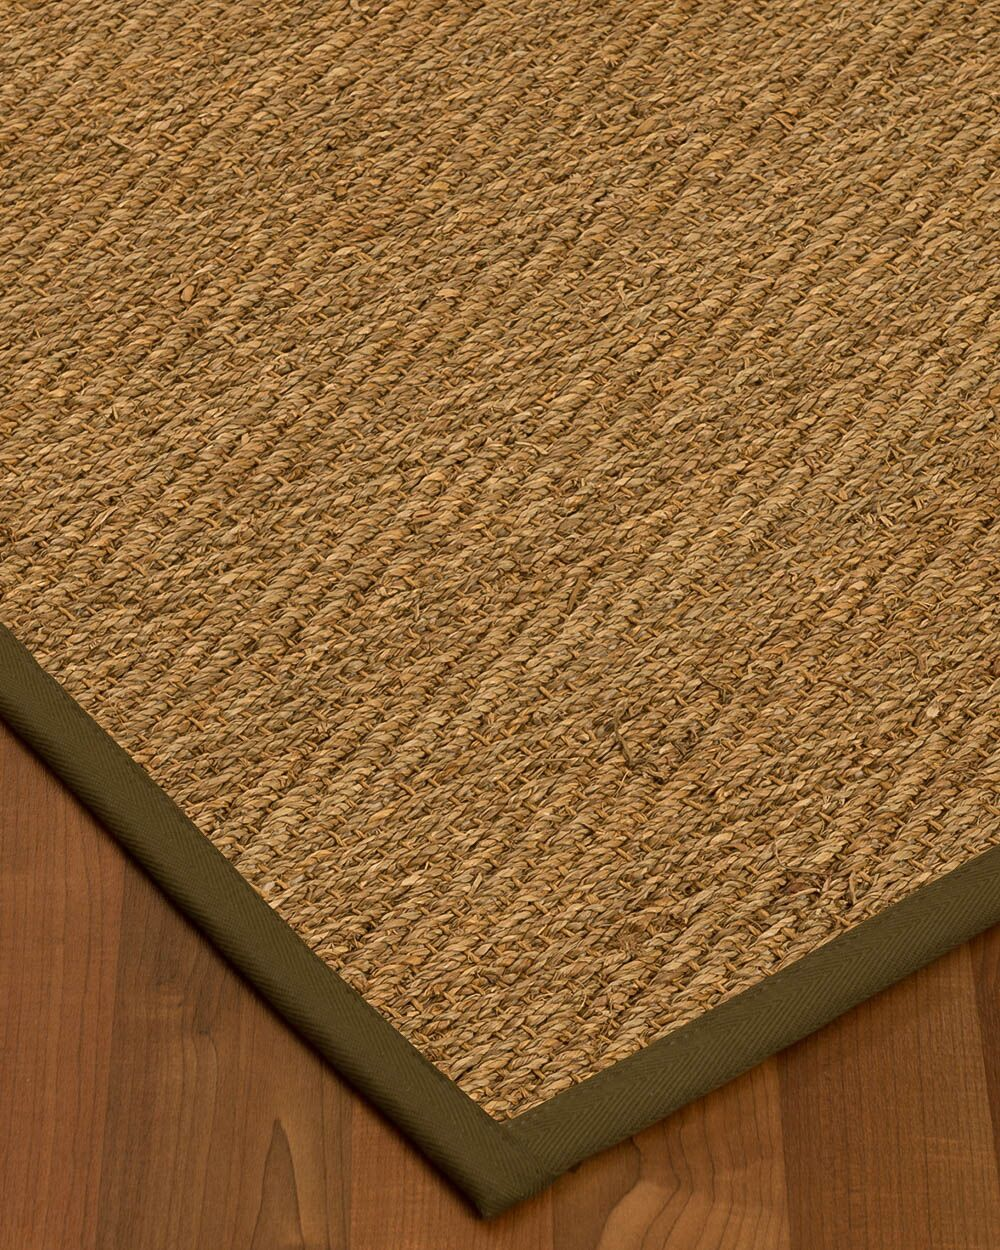 Chavarria Border Hand-Woven Beige/Malt Area Rug Rug Size: Rectangle 9' x 12', Rug Pad Included: Yes